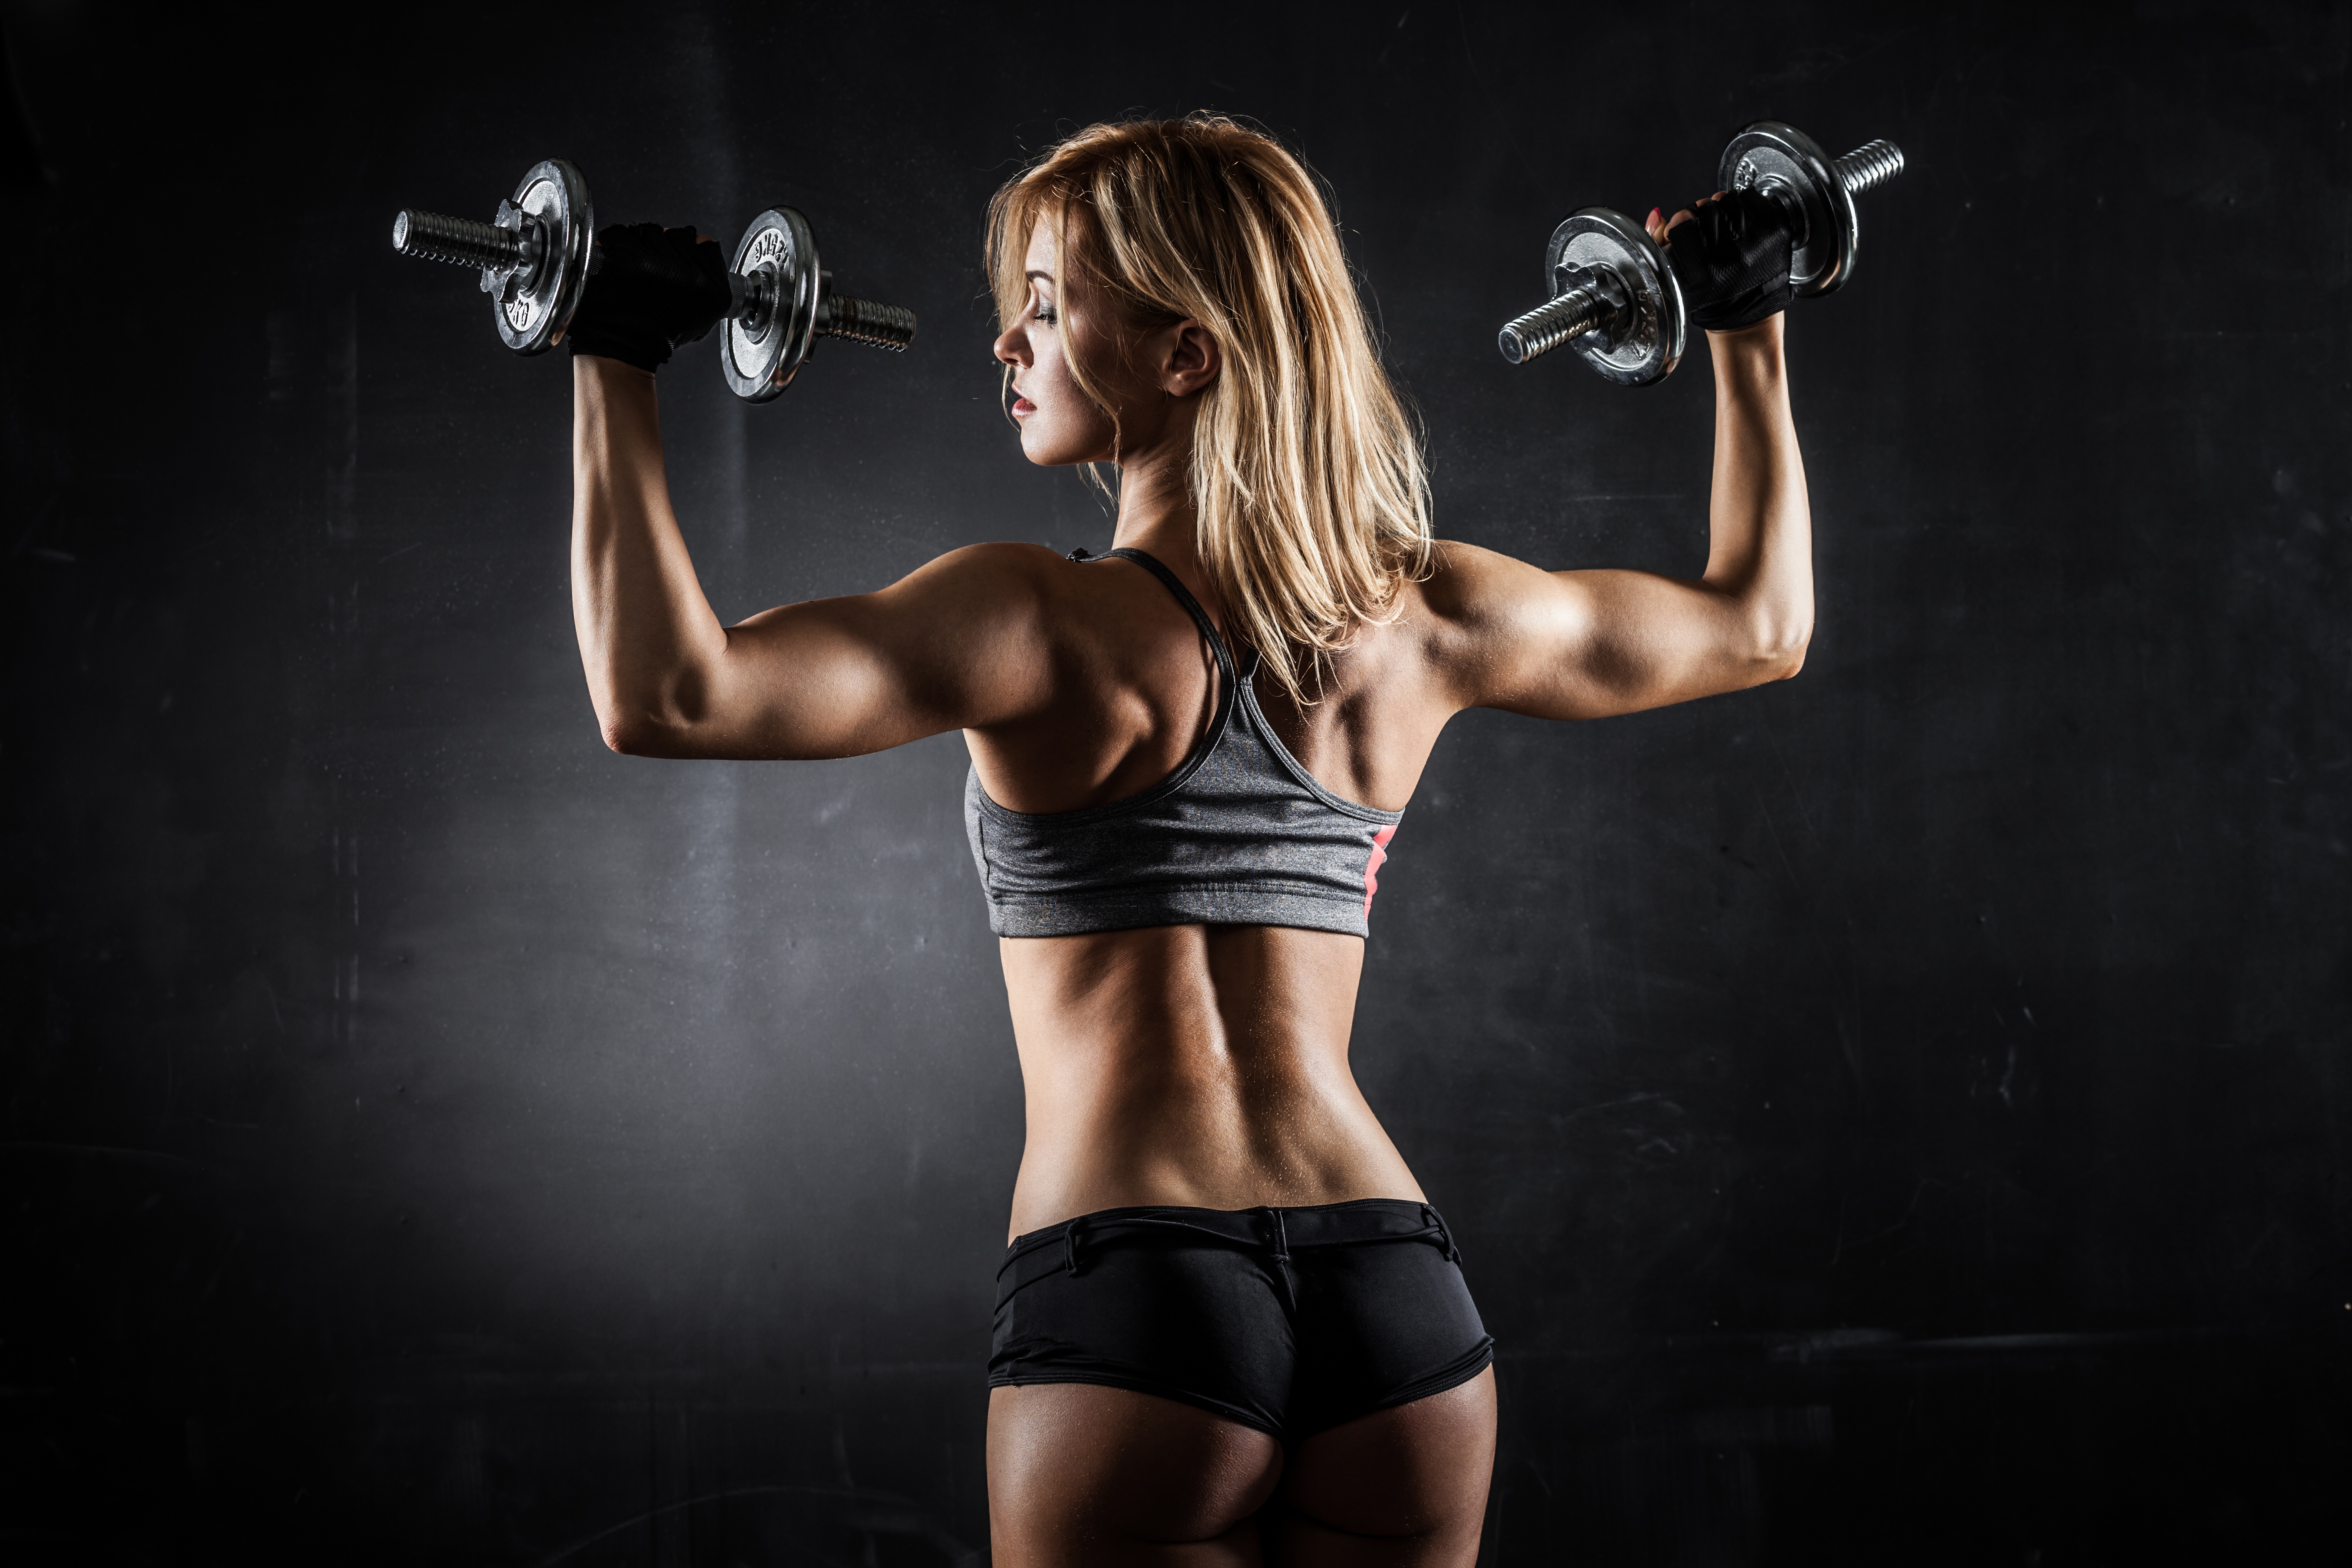 Body Fitness Wallpapers High Quality Is Cool Wallpapers